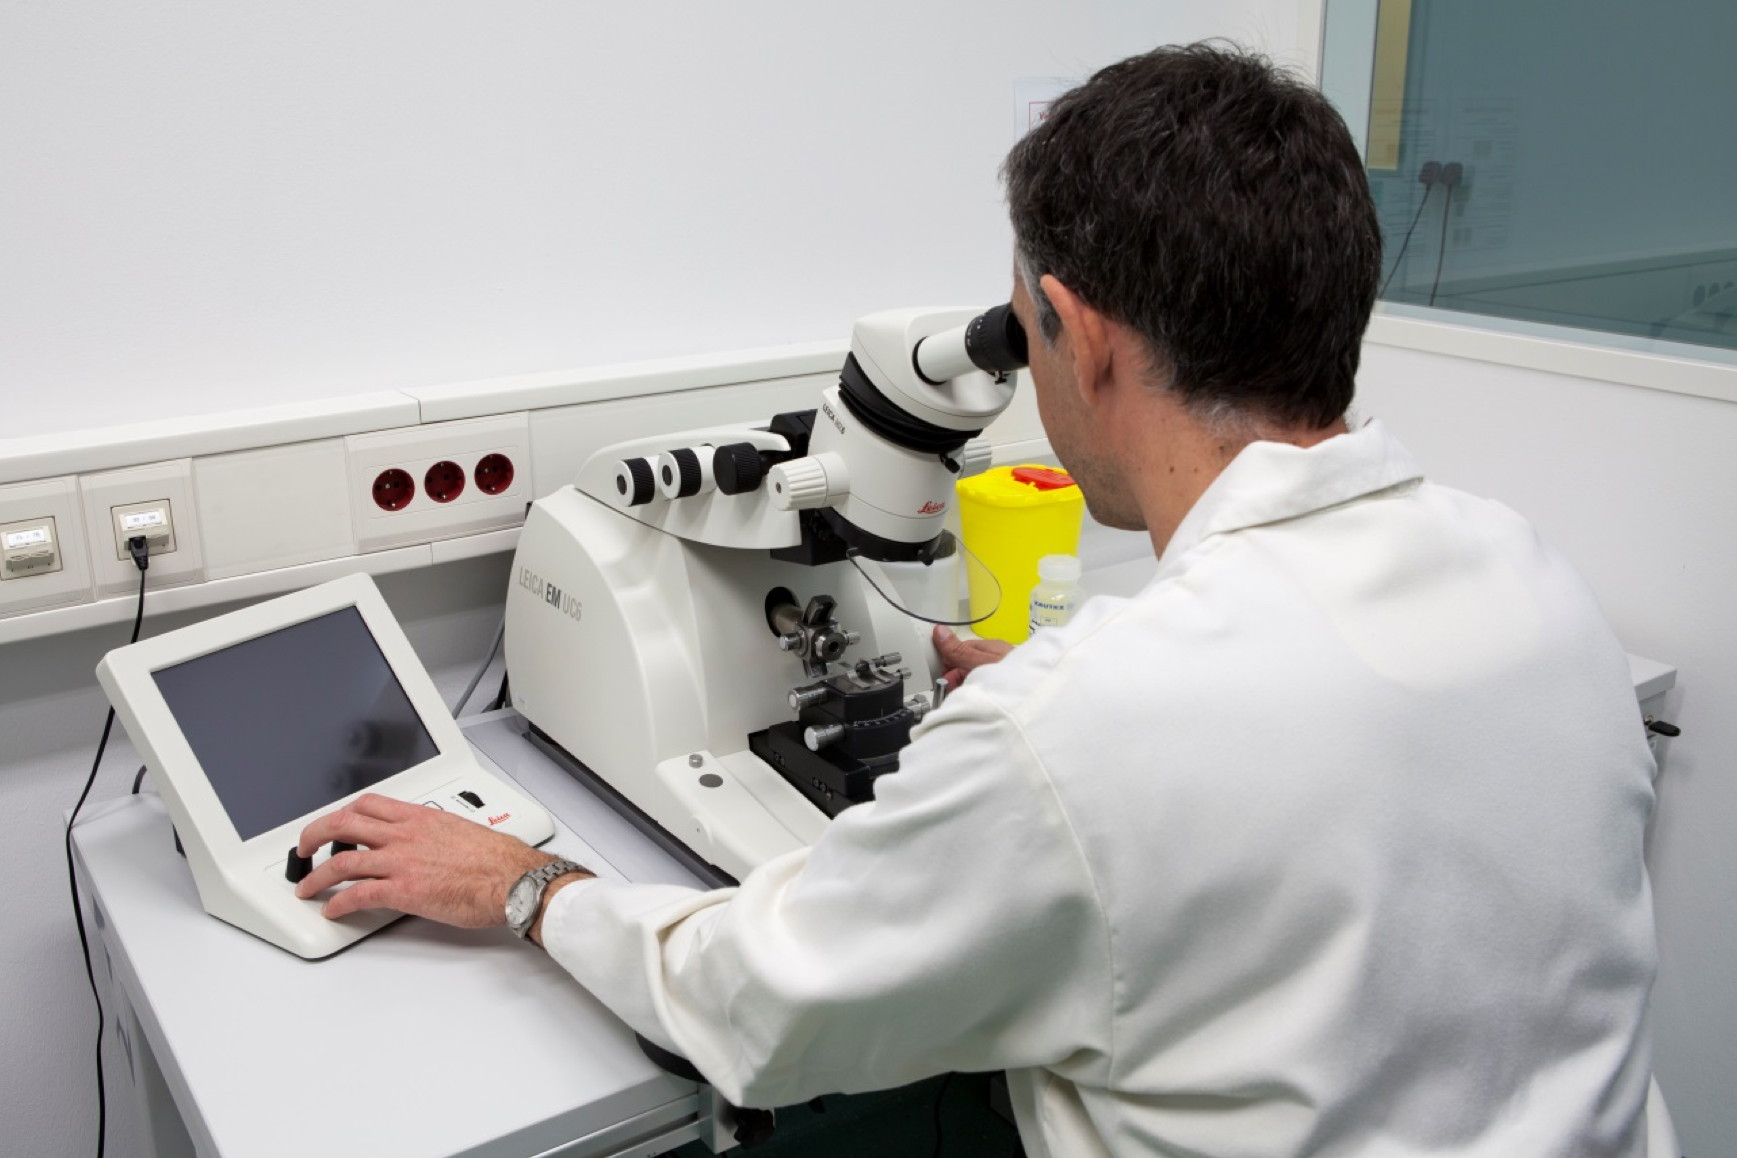 Sophisticated Testing Instruments Used in the Metallurgical Analysis of the Purified CLN